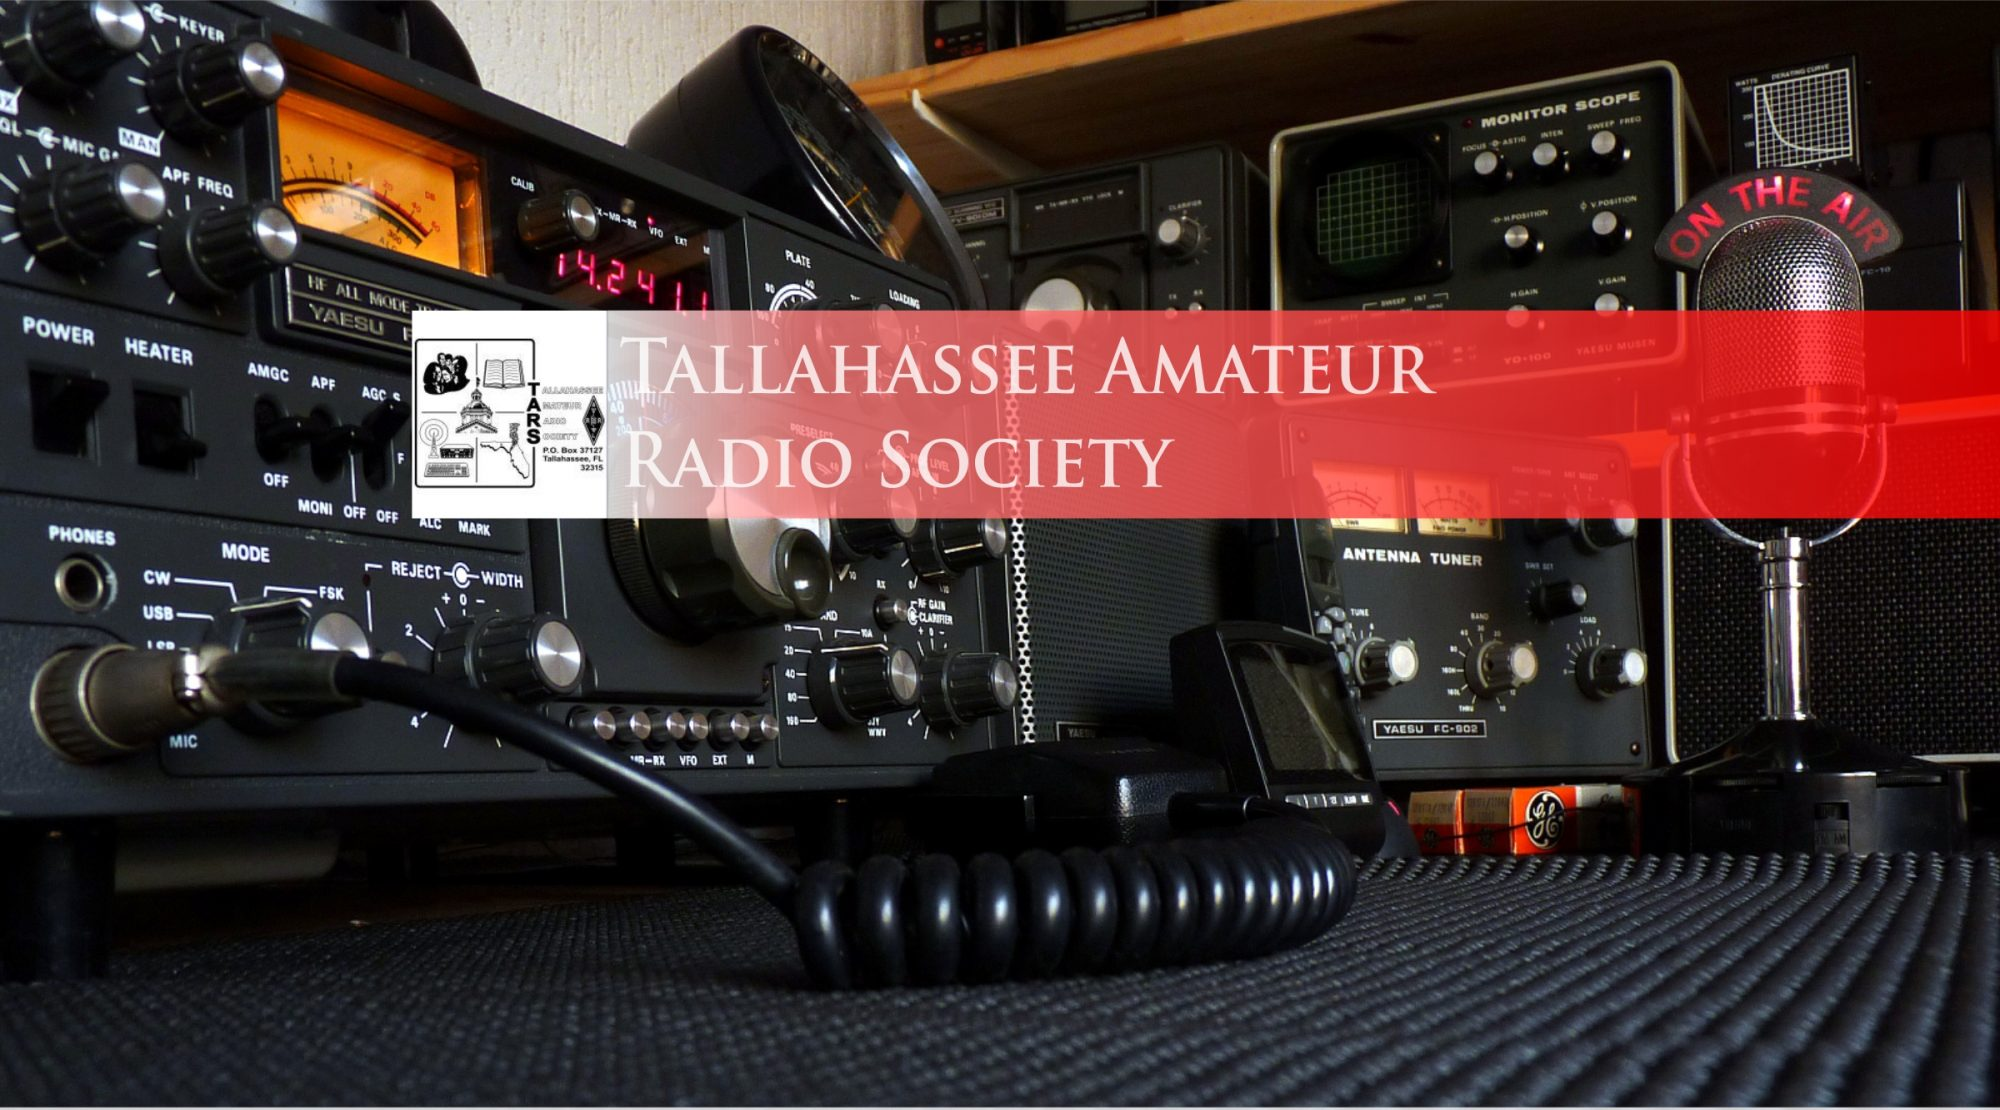 Tallahassee Amateur Radio Society